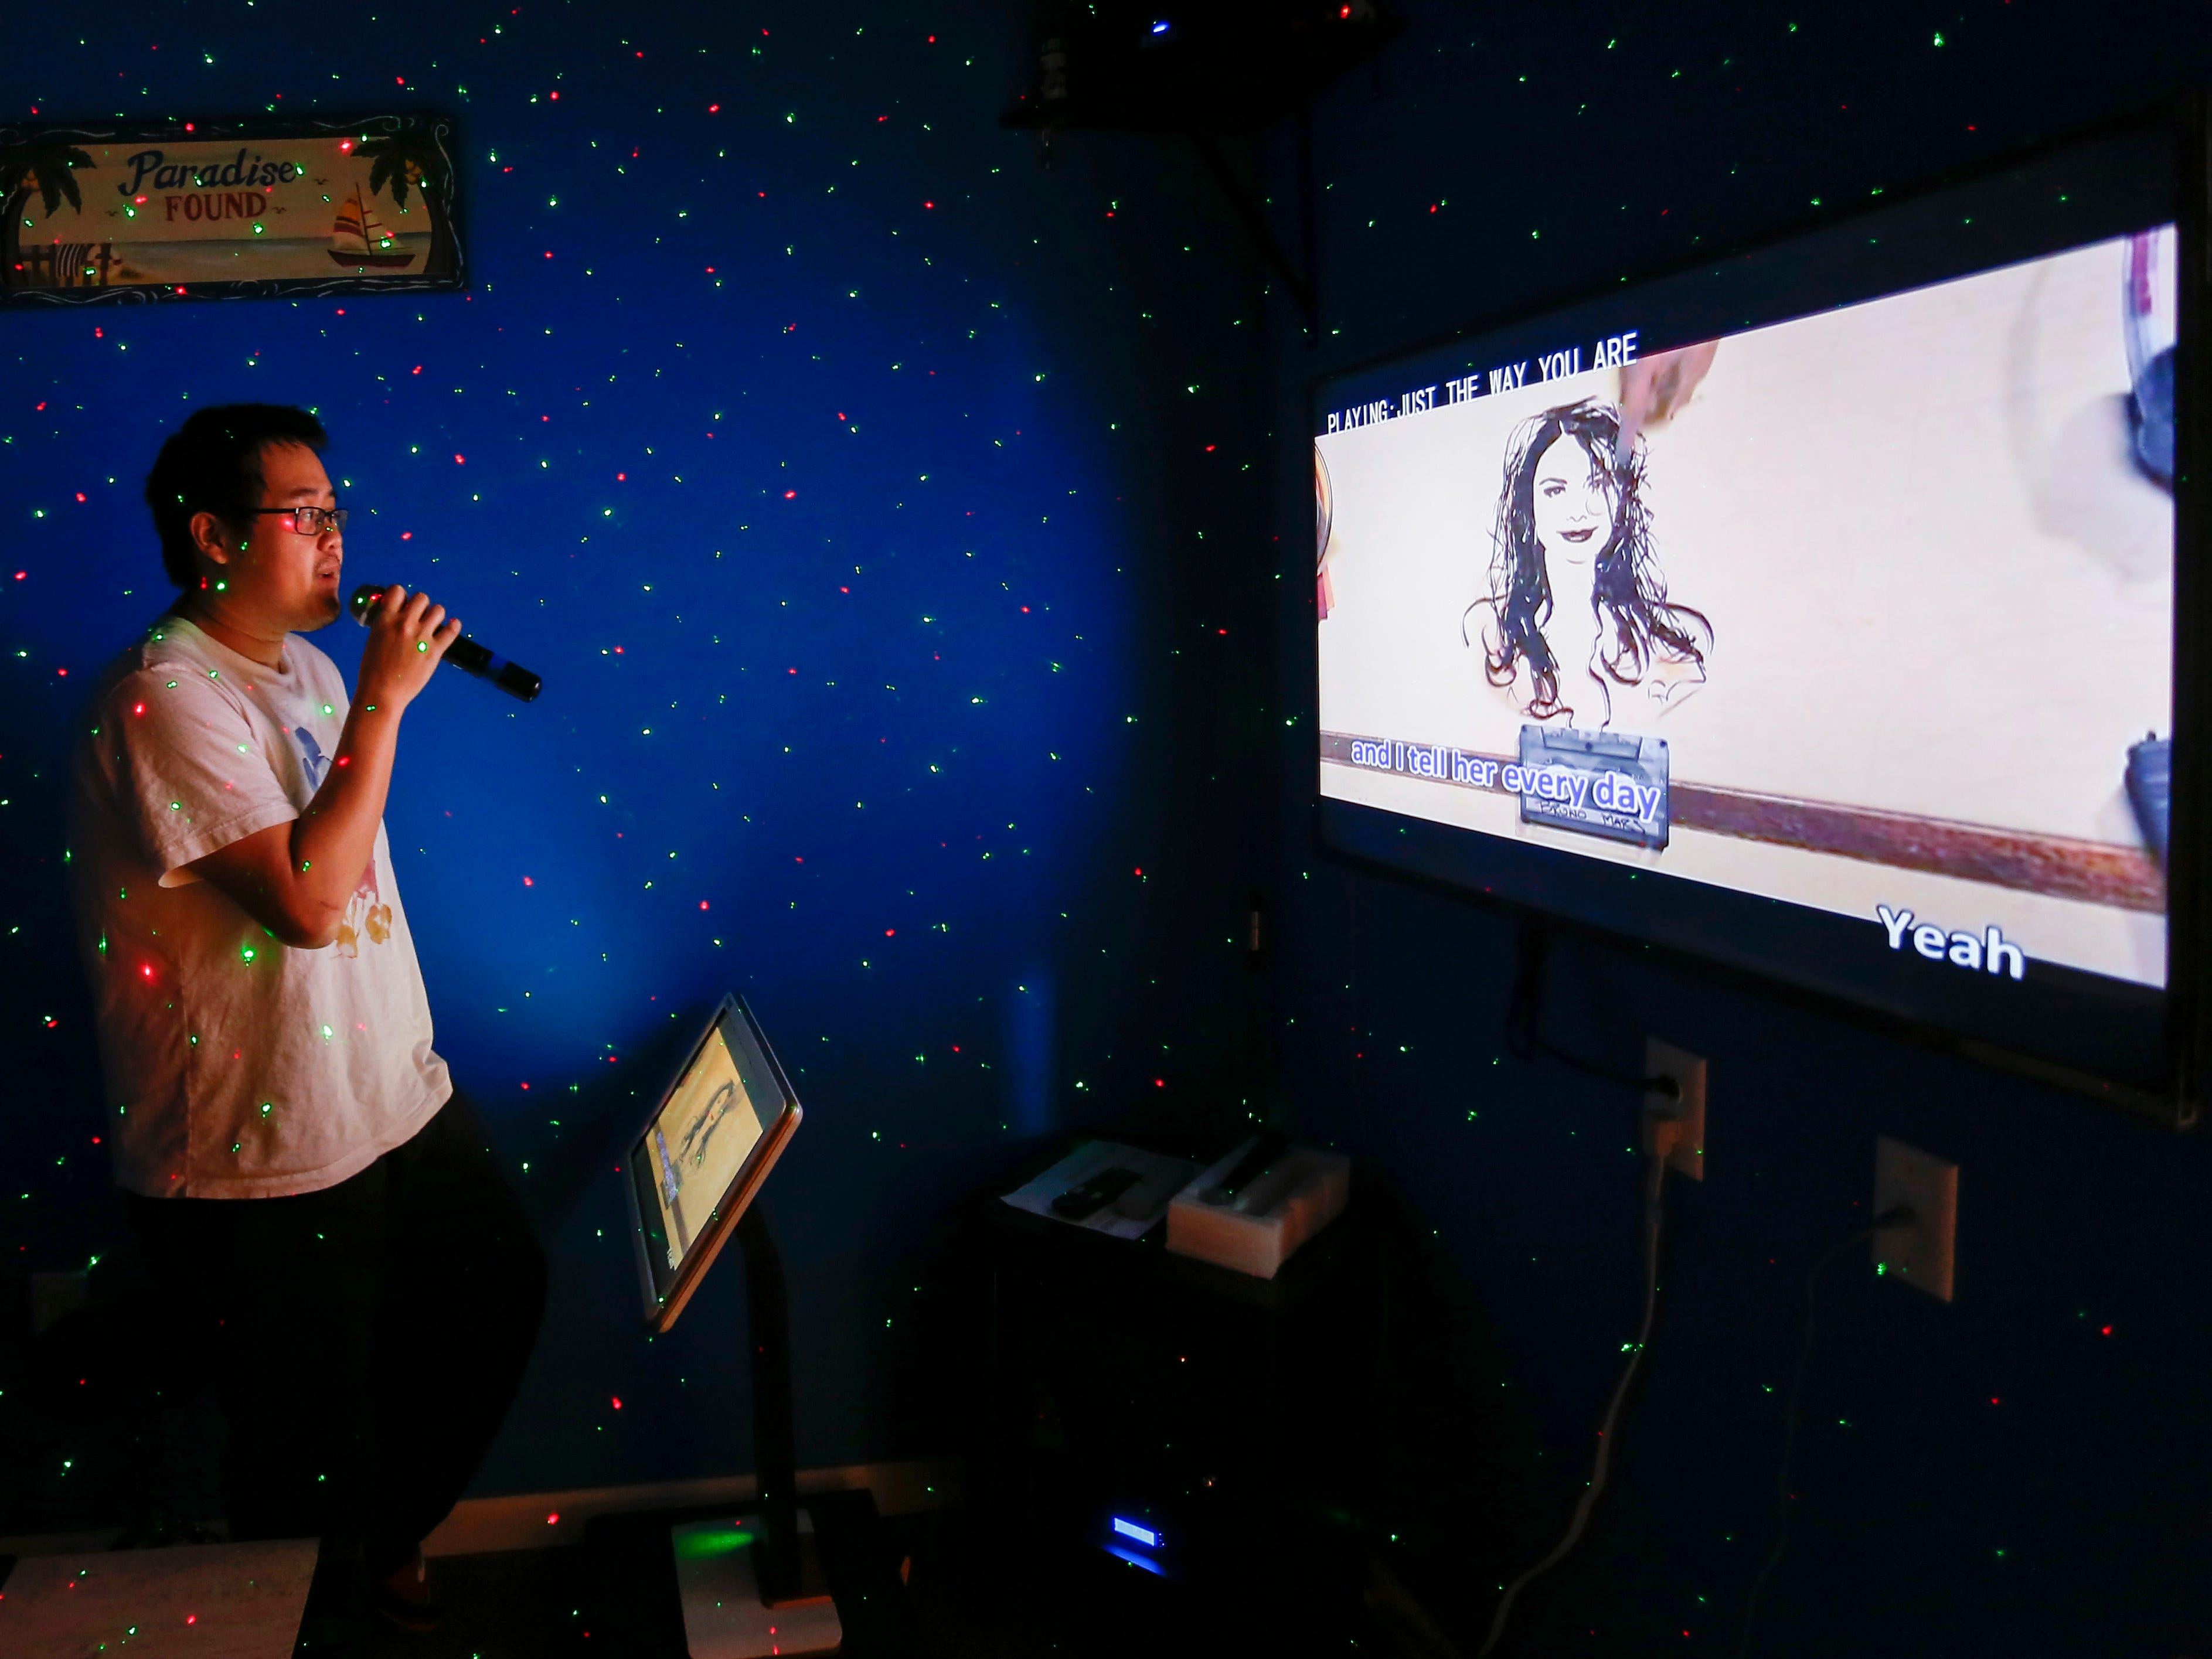 Randall Hang, owner of The Hangout, demonstrates how the karaoke machines work by singing a Bruno Mars song at the new karaoke business on Glenstone Ave. on Wednesday, Jan. 16, 2019.